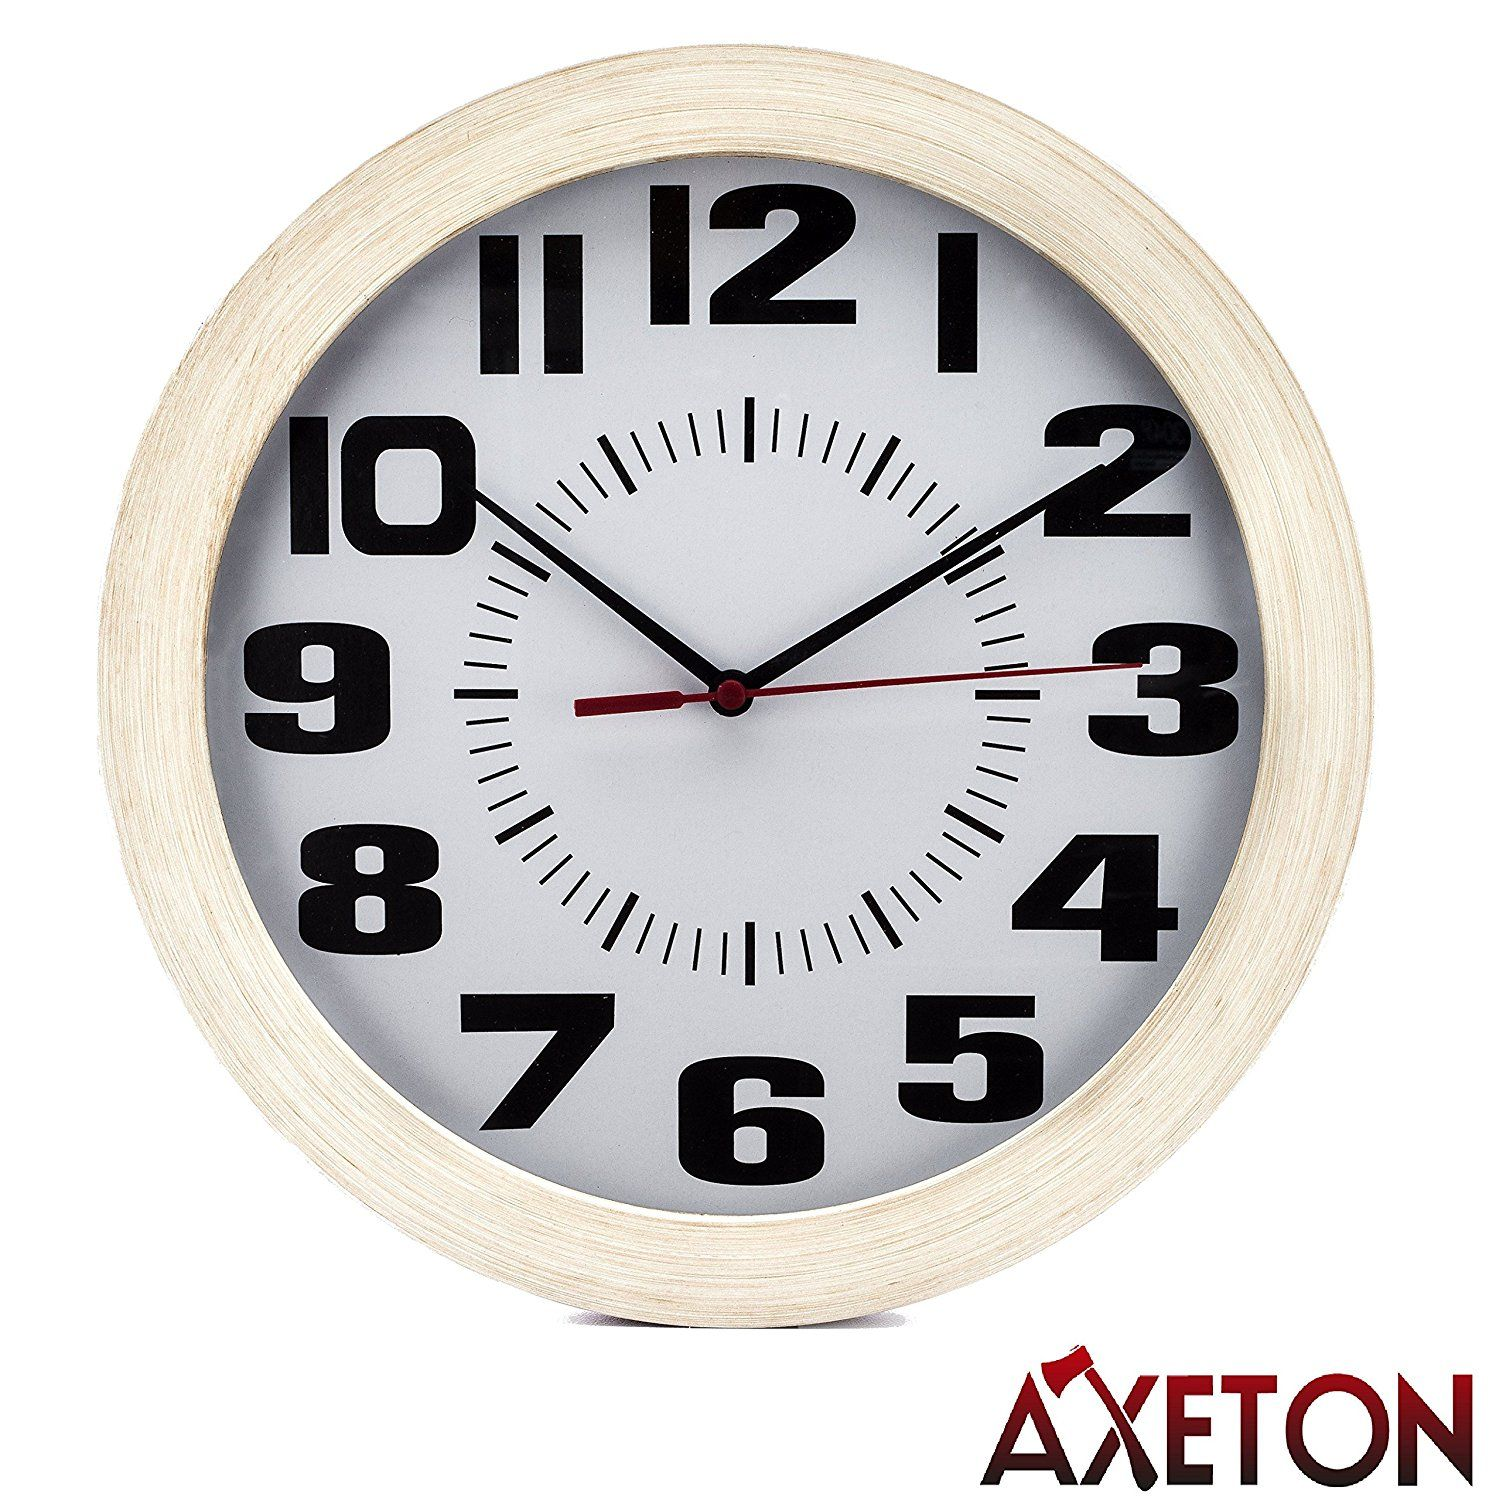 Axeton Round Wall Clock Classic And Vintage Style Wood Grain Finish 10 Inches Large Numbers D Wall Clock Vintage Style Vintage Wall Clock Round Wall Clocks